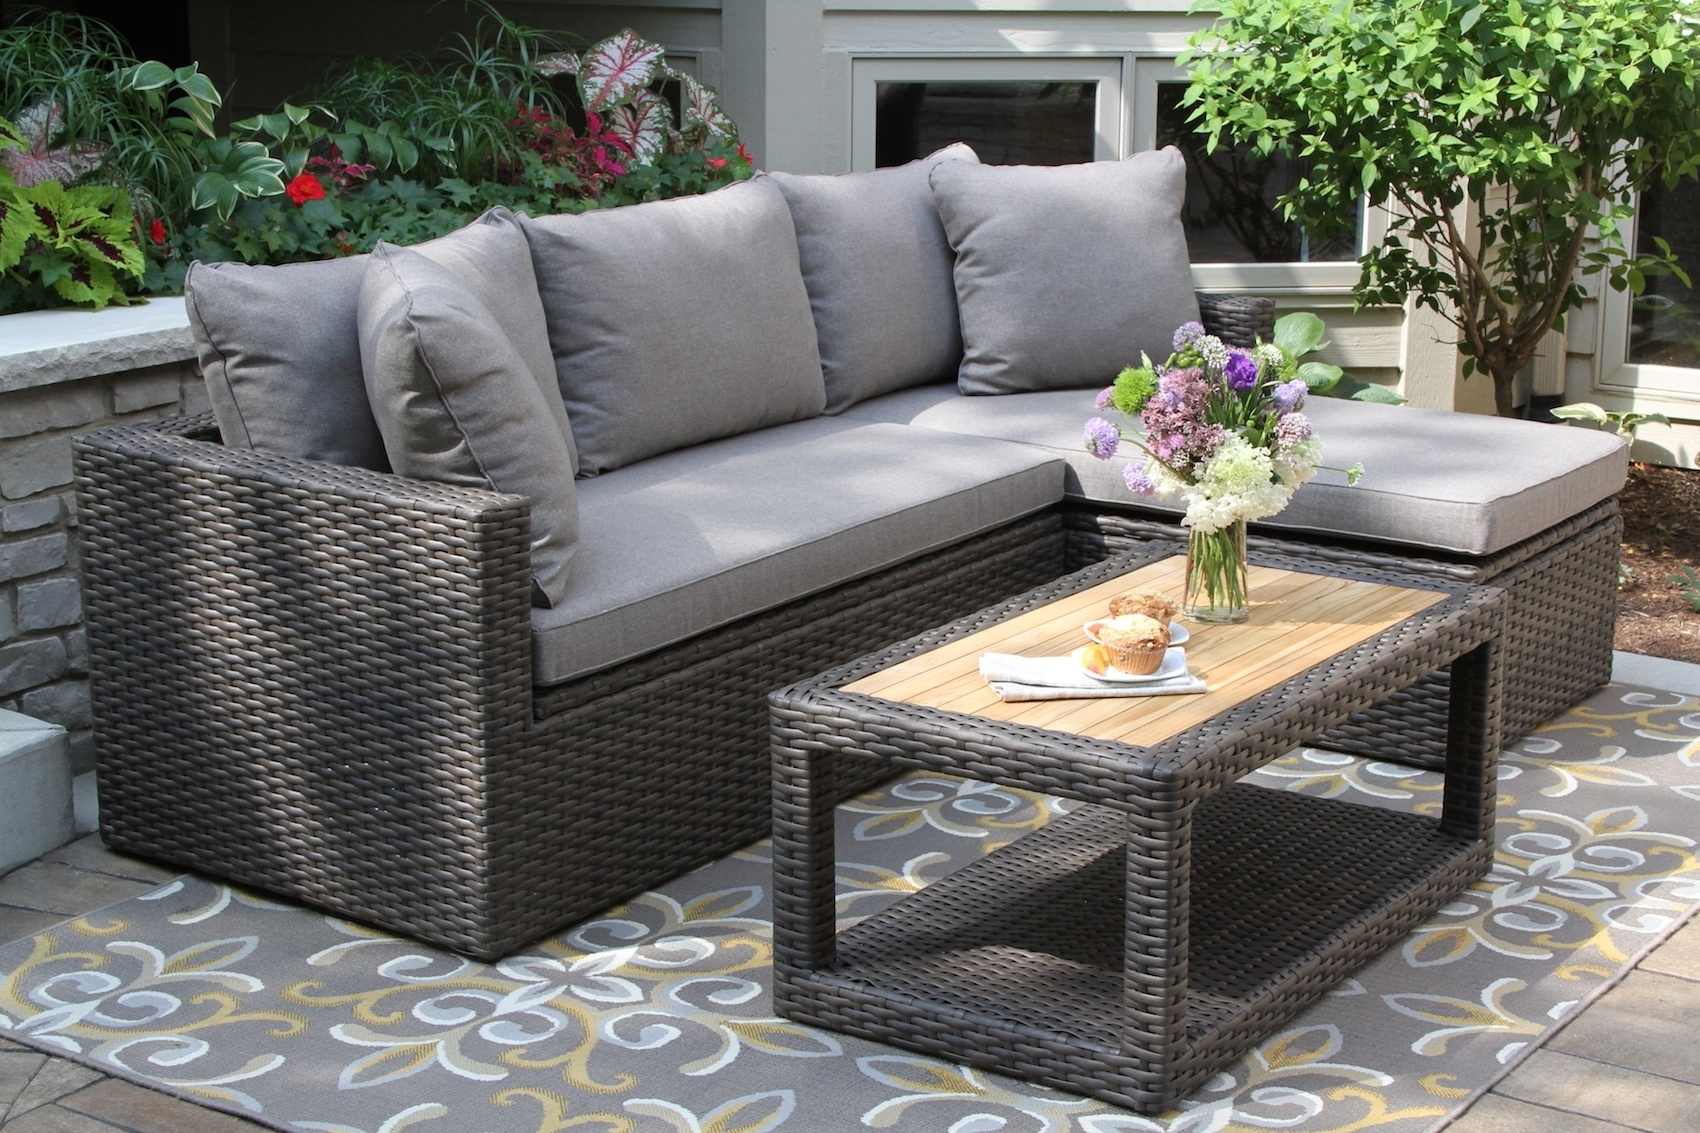 Well Known Teak And Eucalyptus Wood Outdoor Furniture, Torches, Planters Inside Patio Conversation Sets With Storage (View 14 of 15)